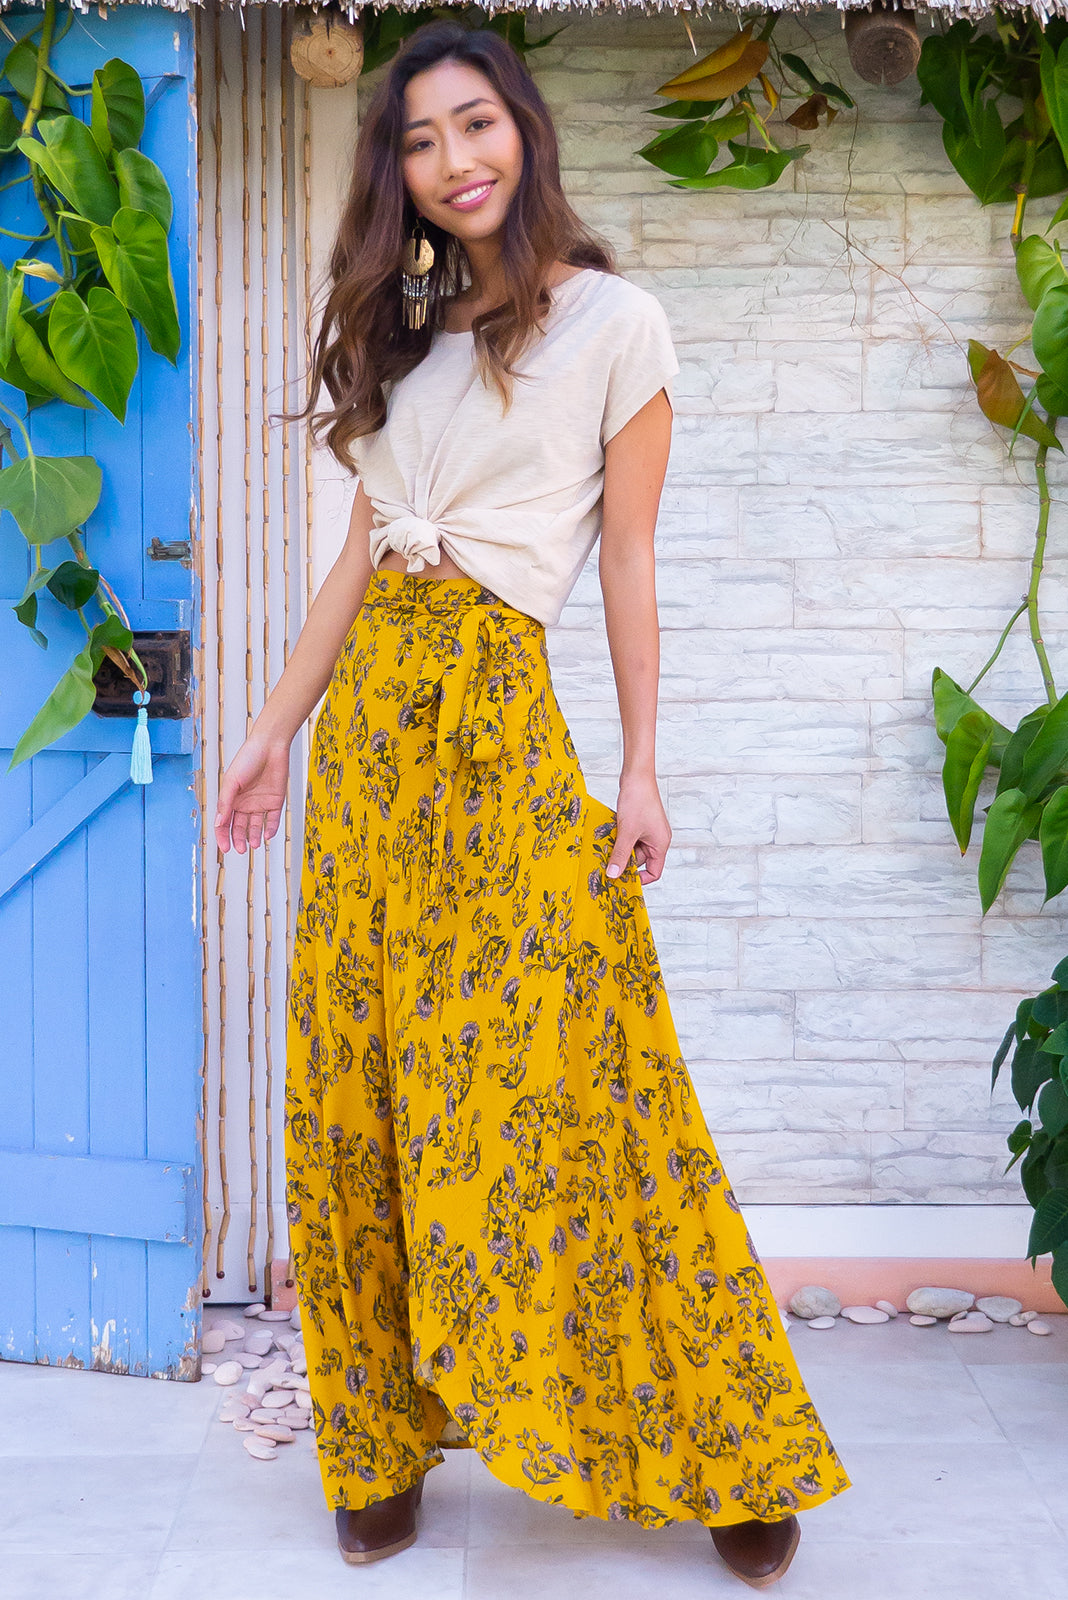 Penny Lane Gold Sprig Maxi Wrap Skirt with an adjustable wraparound waist and waterfall hemline in a soft woven crinkle textured rayon with a bright rich gold floral print